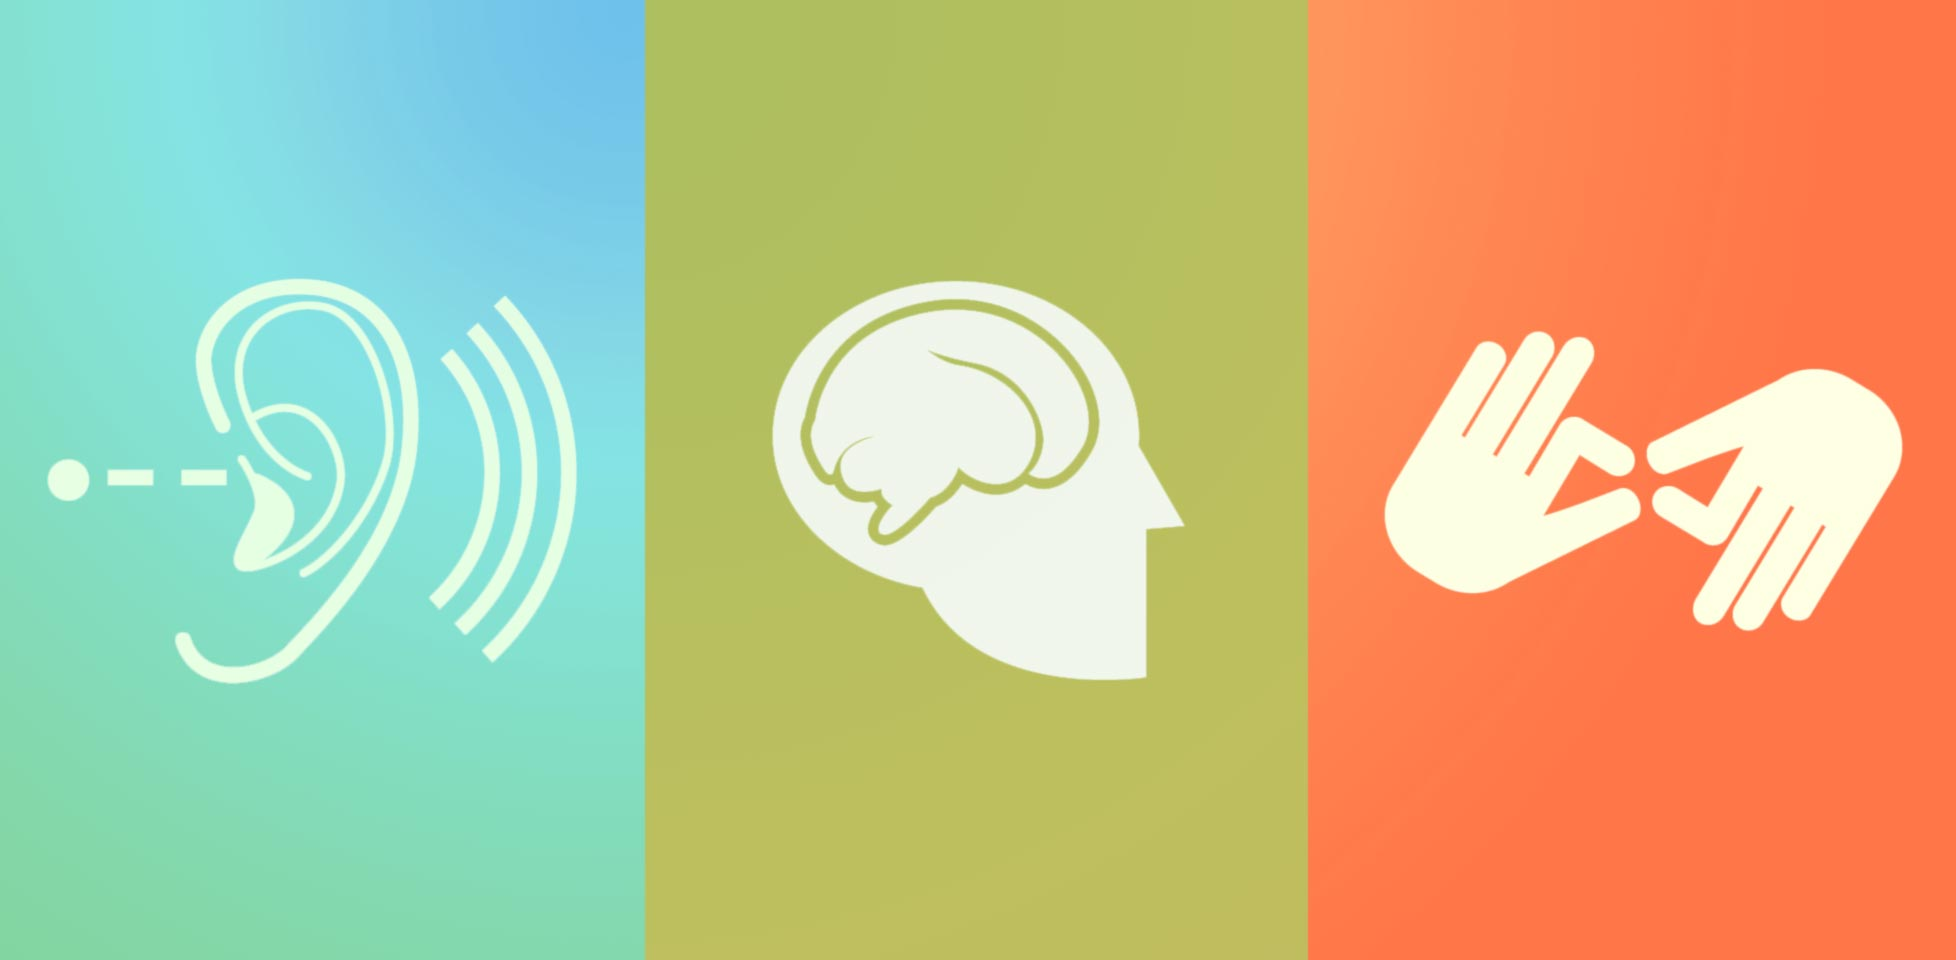 multicolored image with three panels: an ear with sound waves, a human head with a brain, and a pair of signing hands